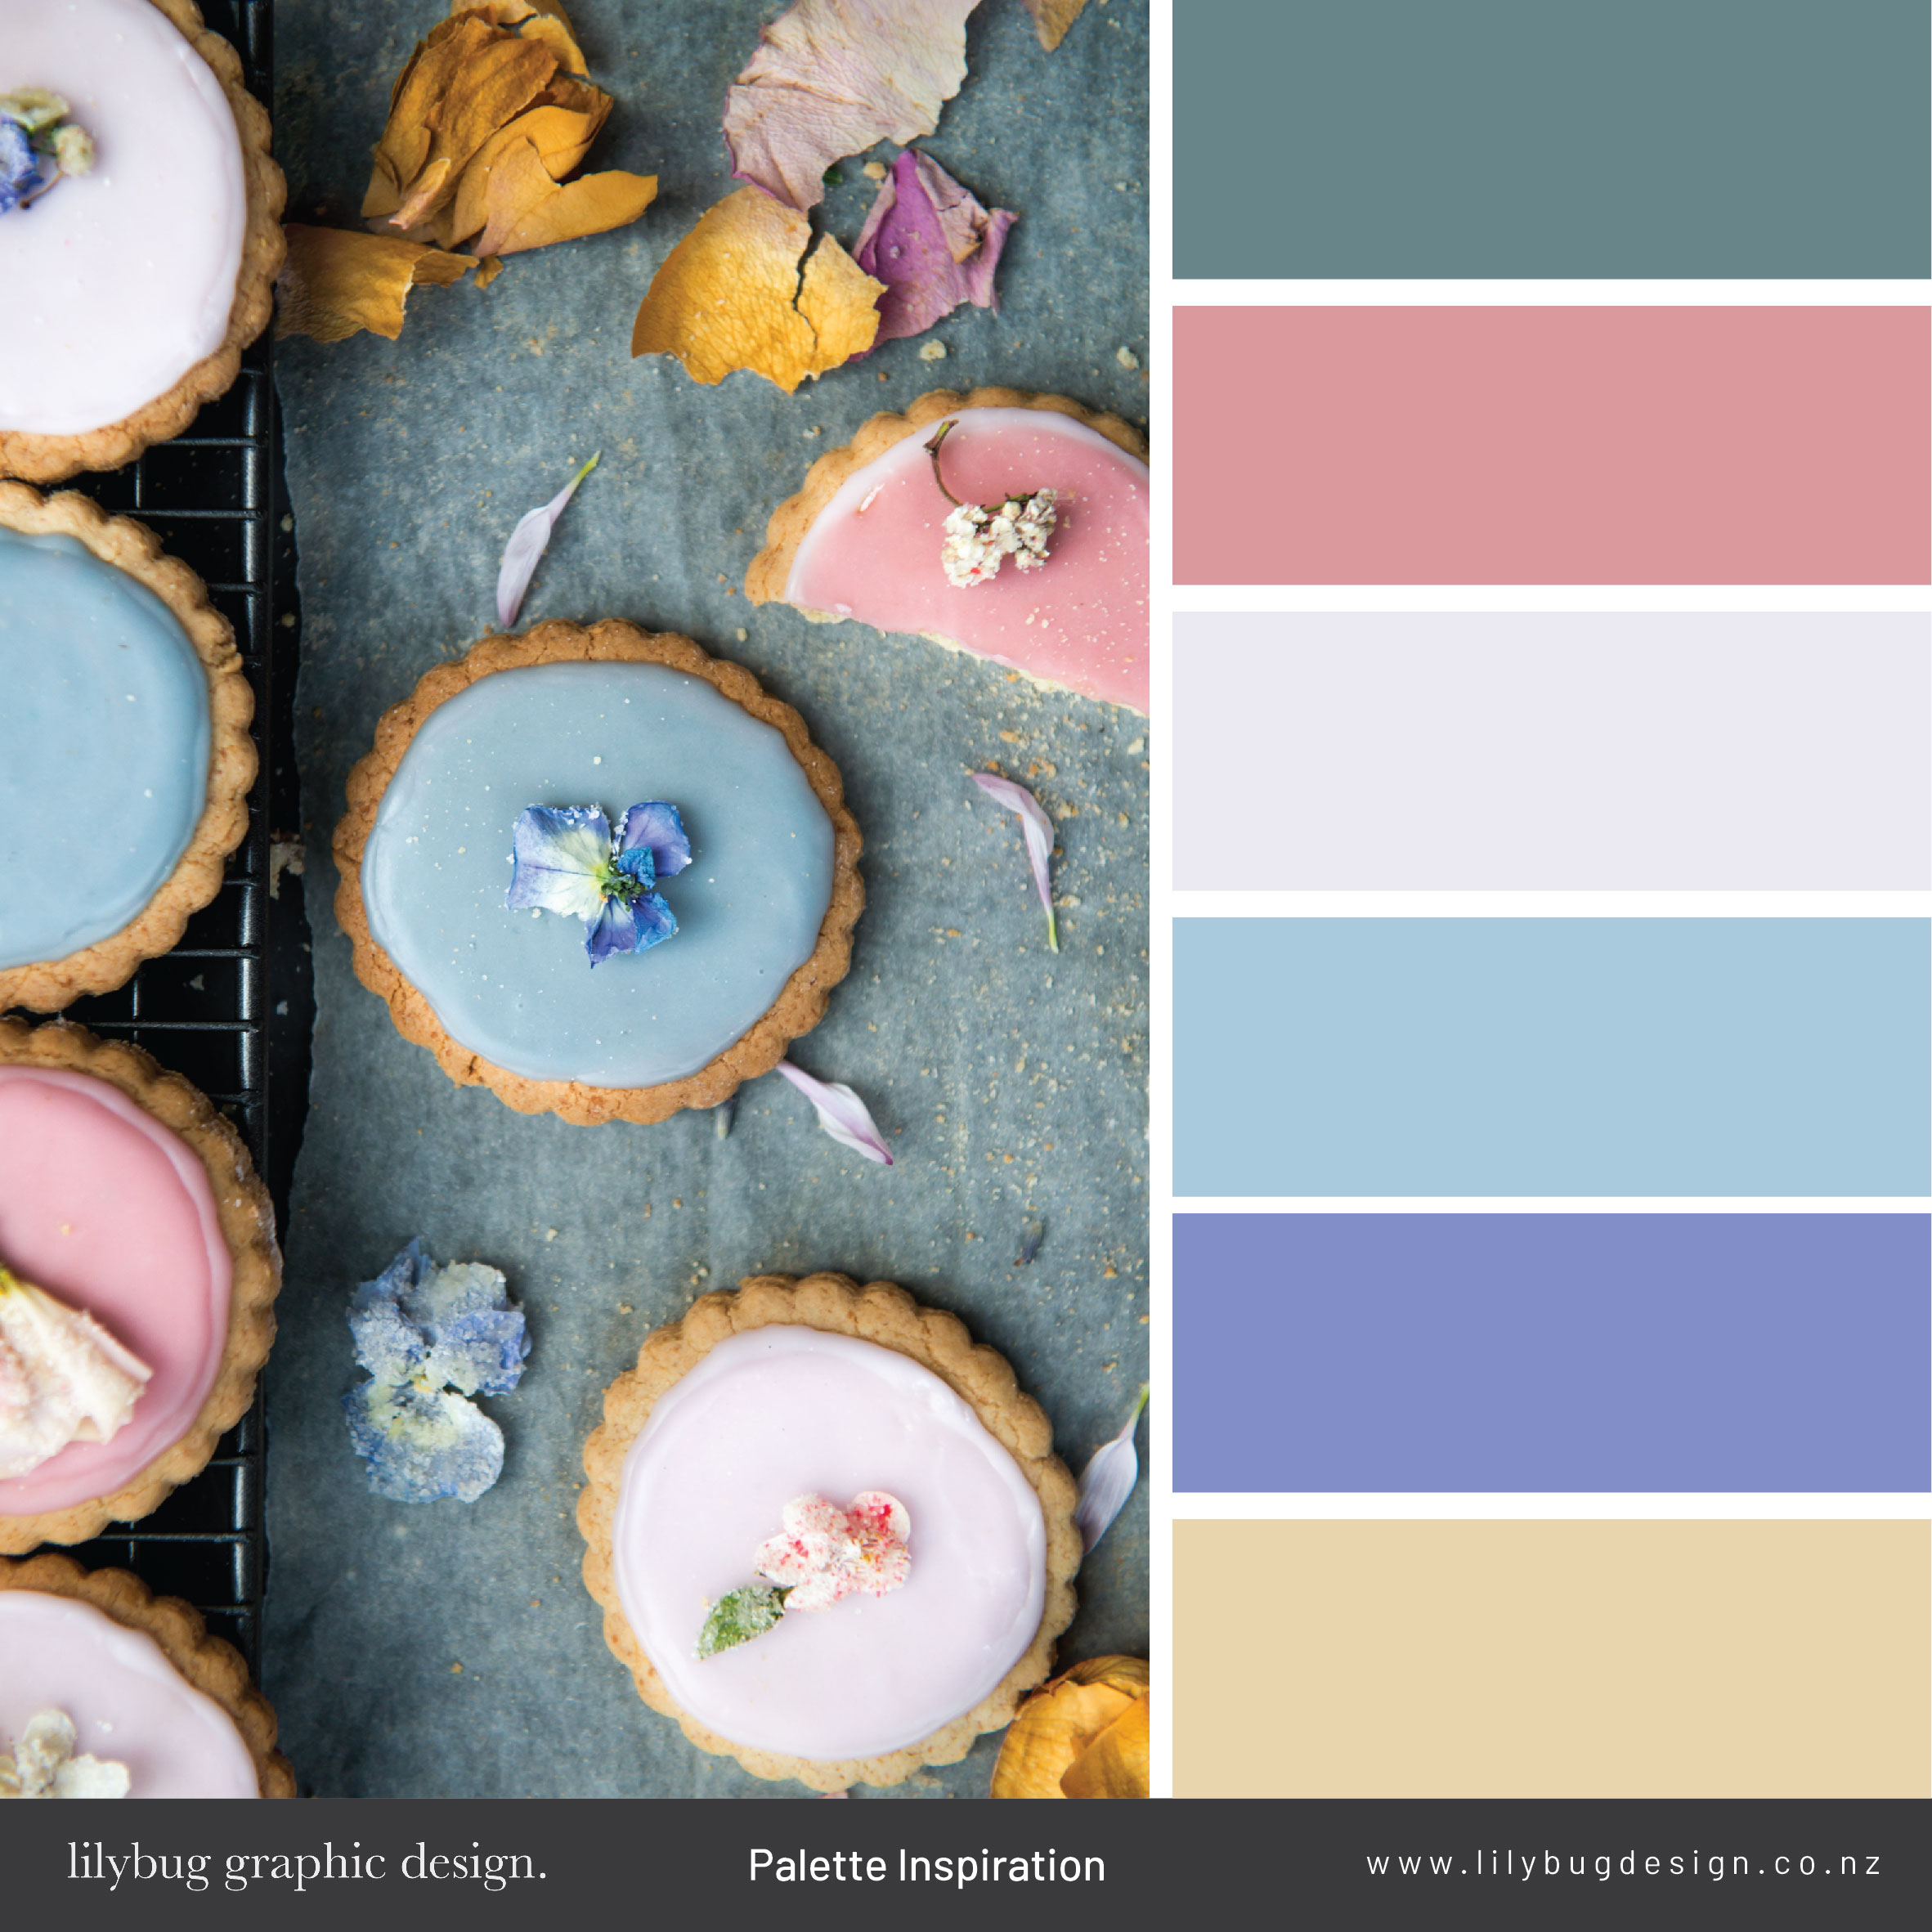 Palette Inspiration - cookies-01.jpg